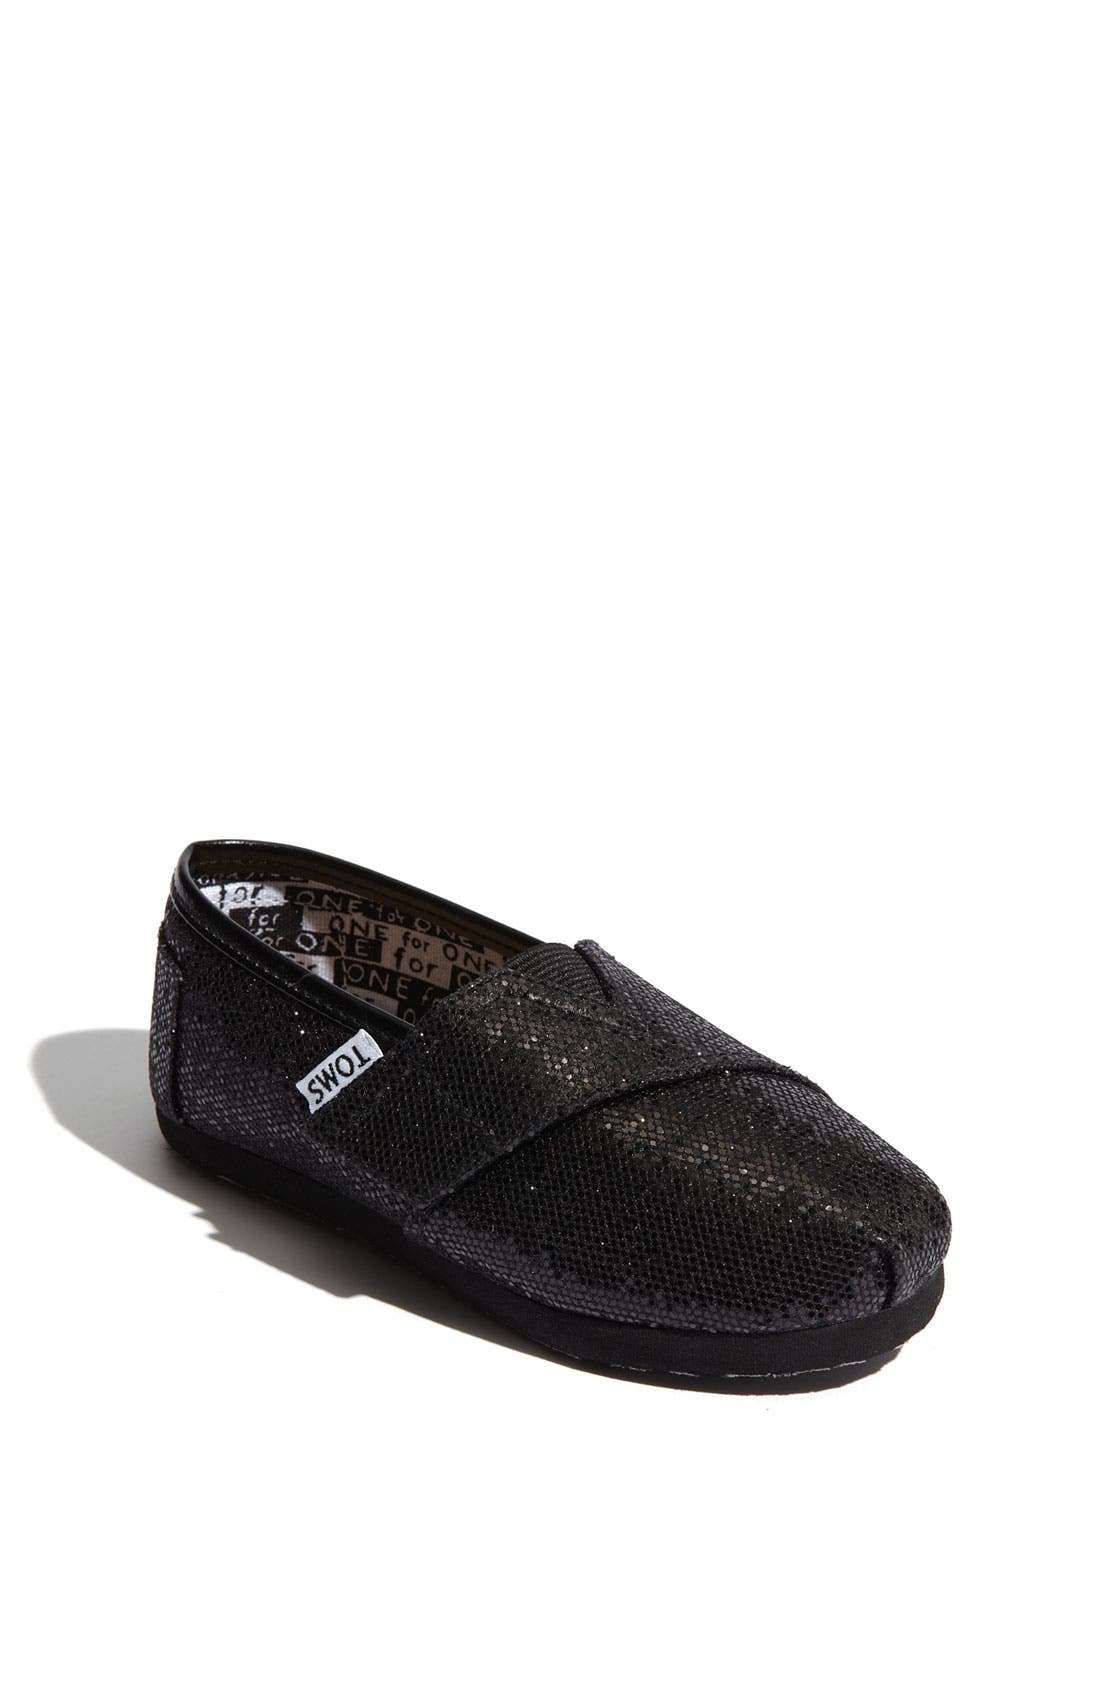 Alternate Image 1 Selected - TOMS 'Classic Tiny - Glitter' Slip-On (Baby, Walker & Toddler)